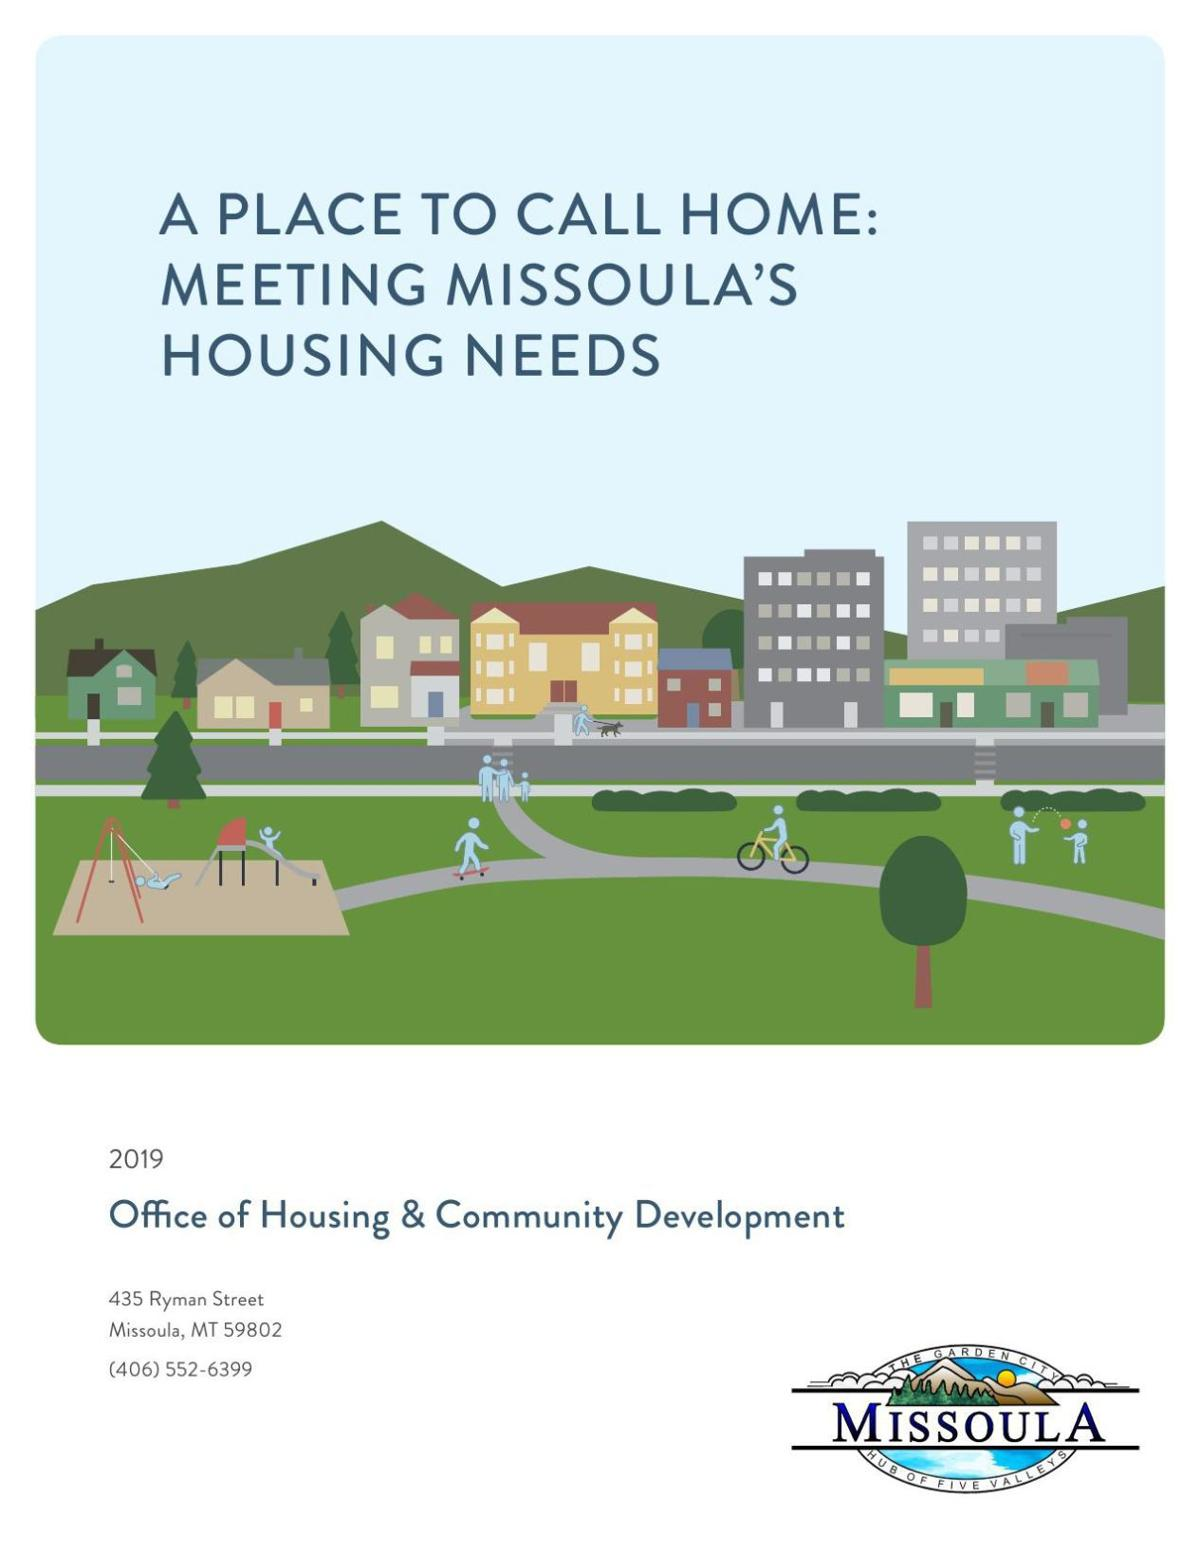 A Place to Call Home: Meeting Missoula's Housing Needs